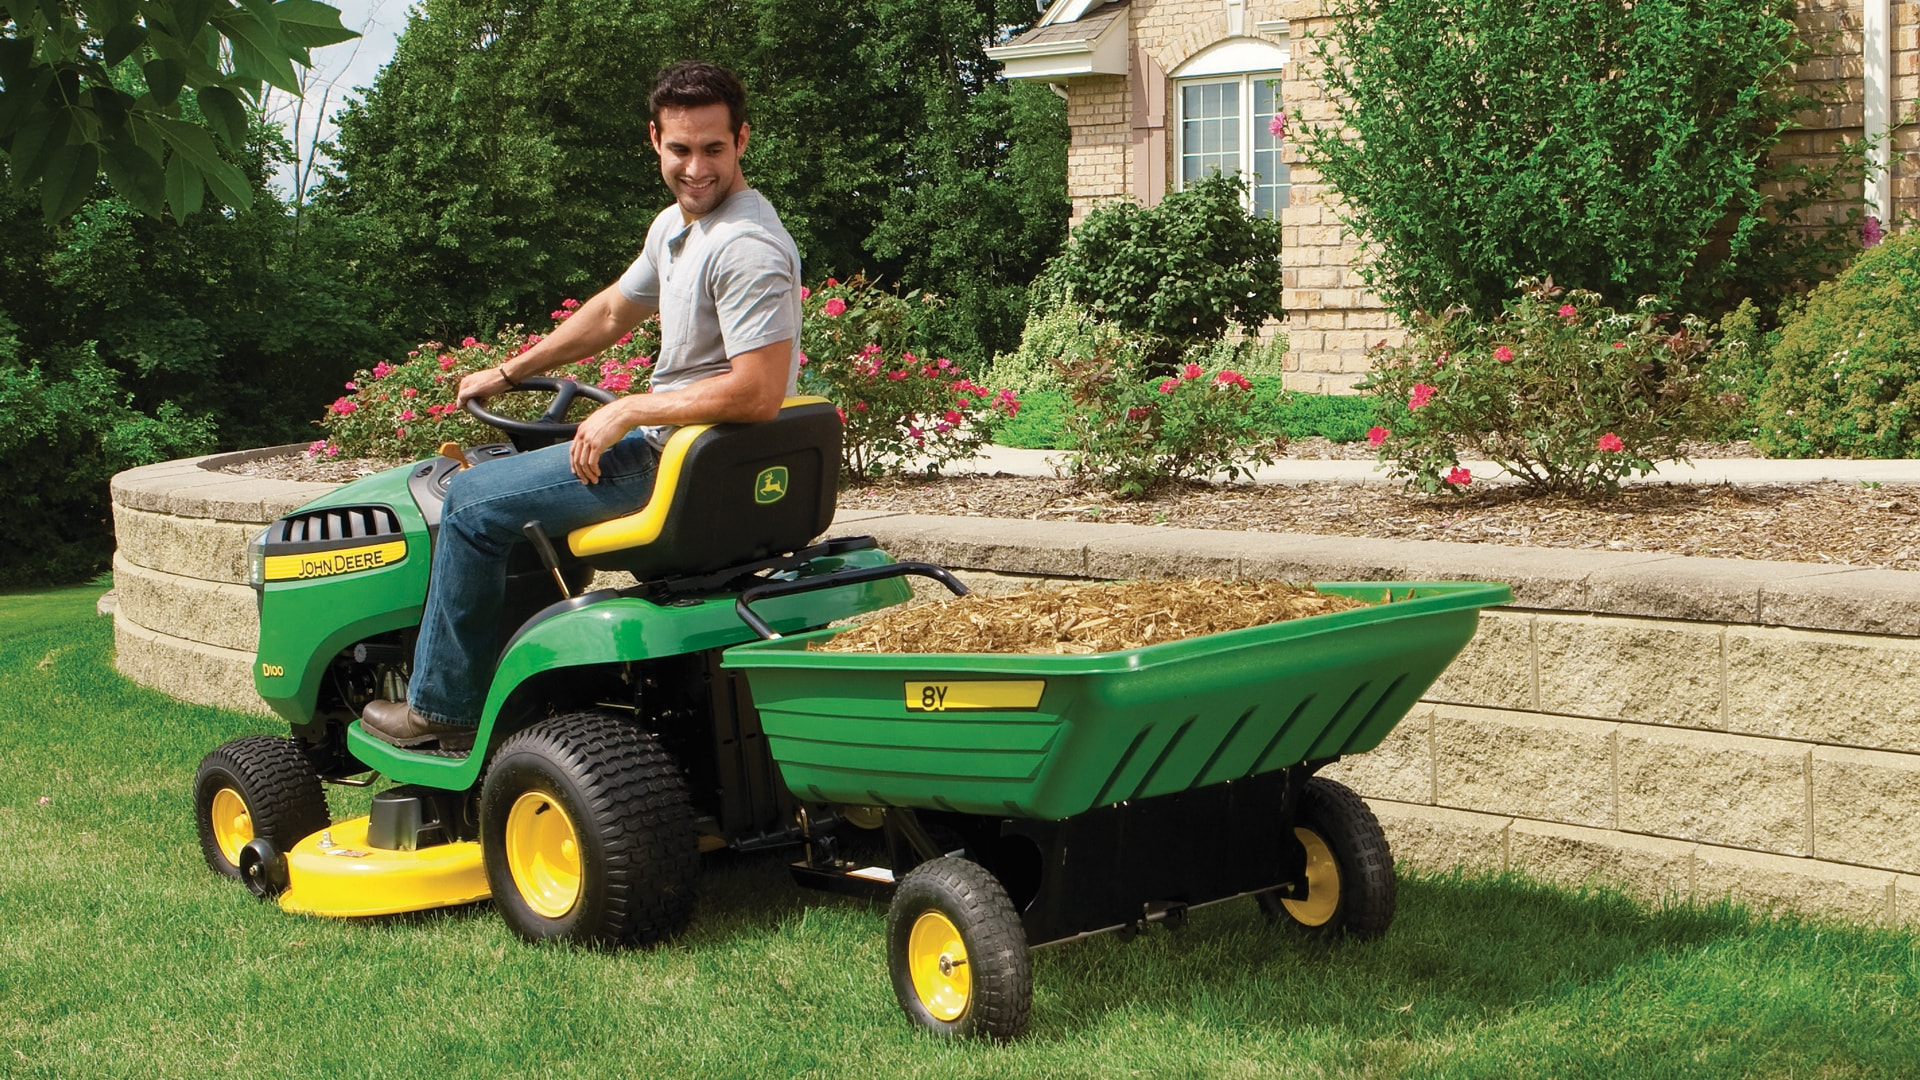 image of cart attached to lawn tractor